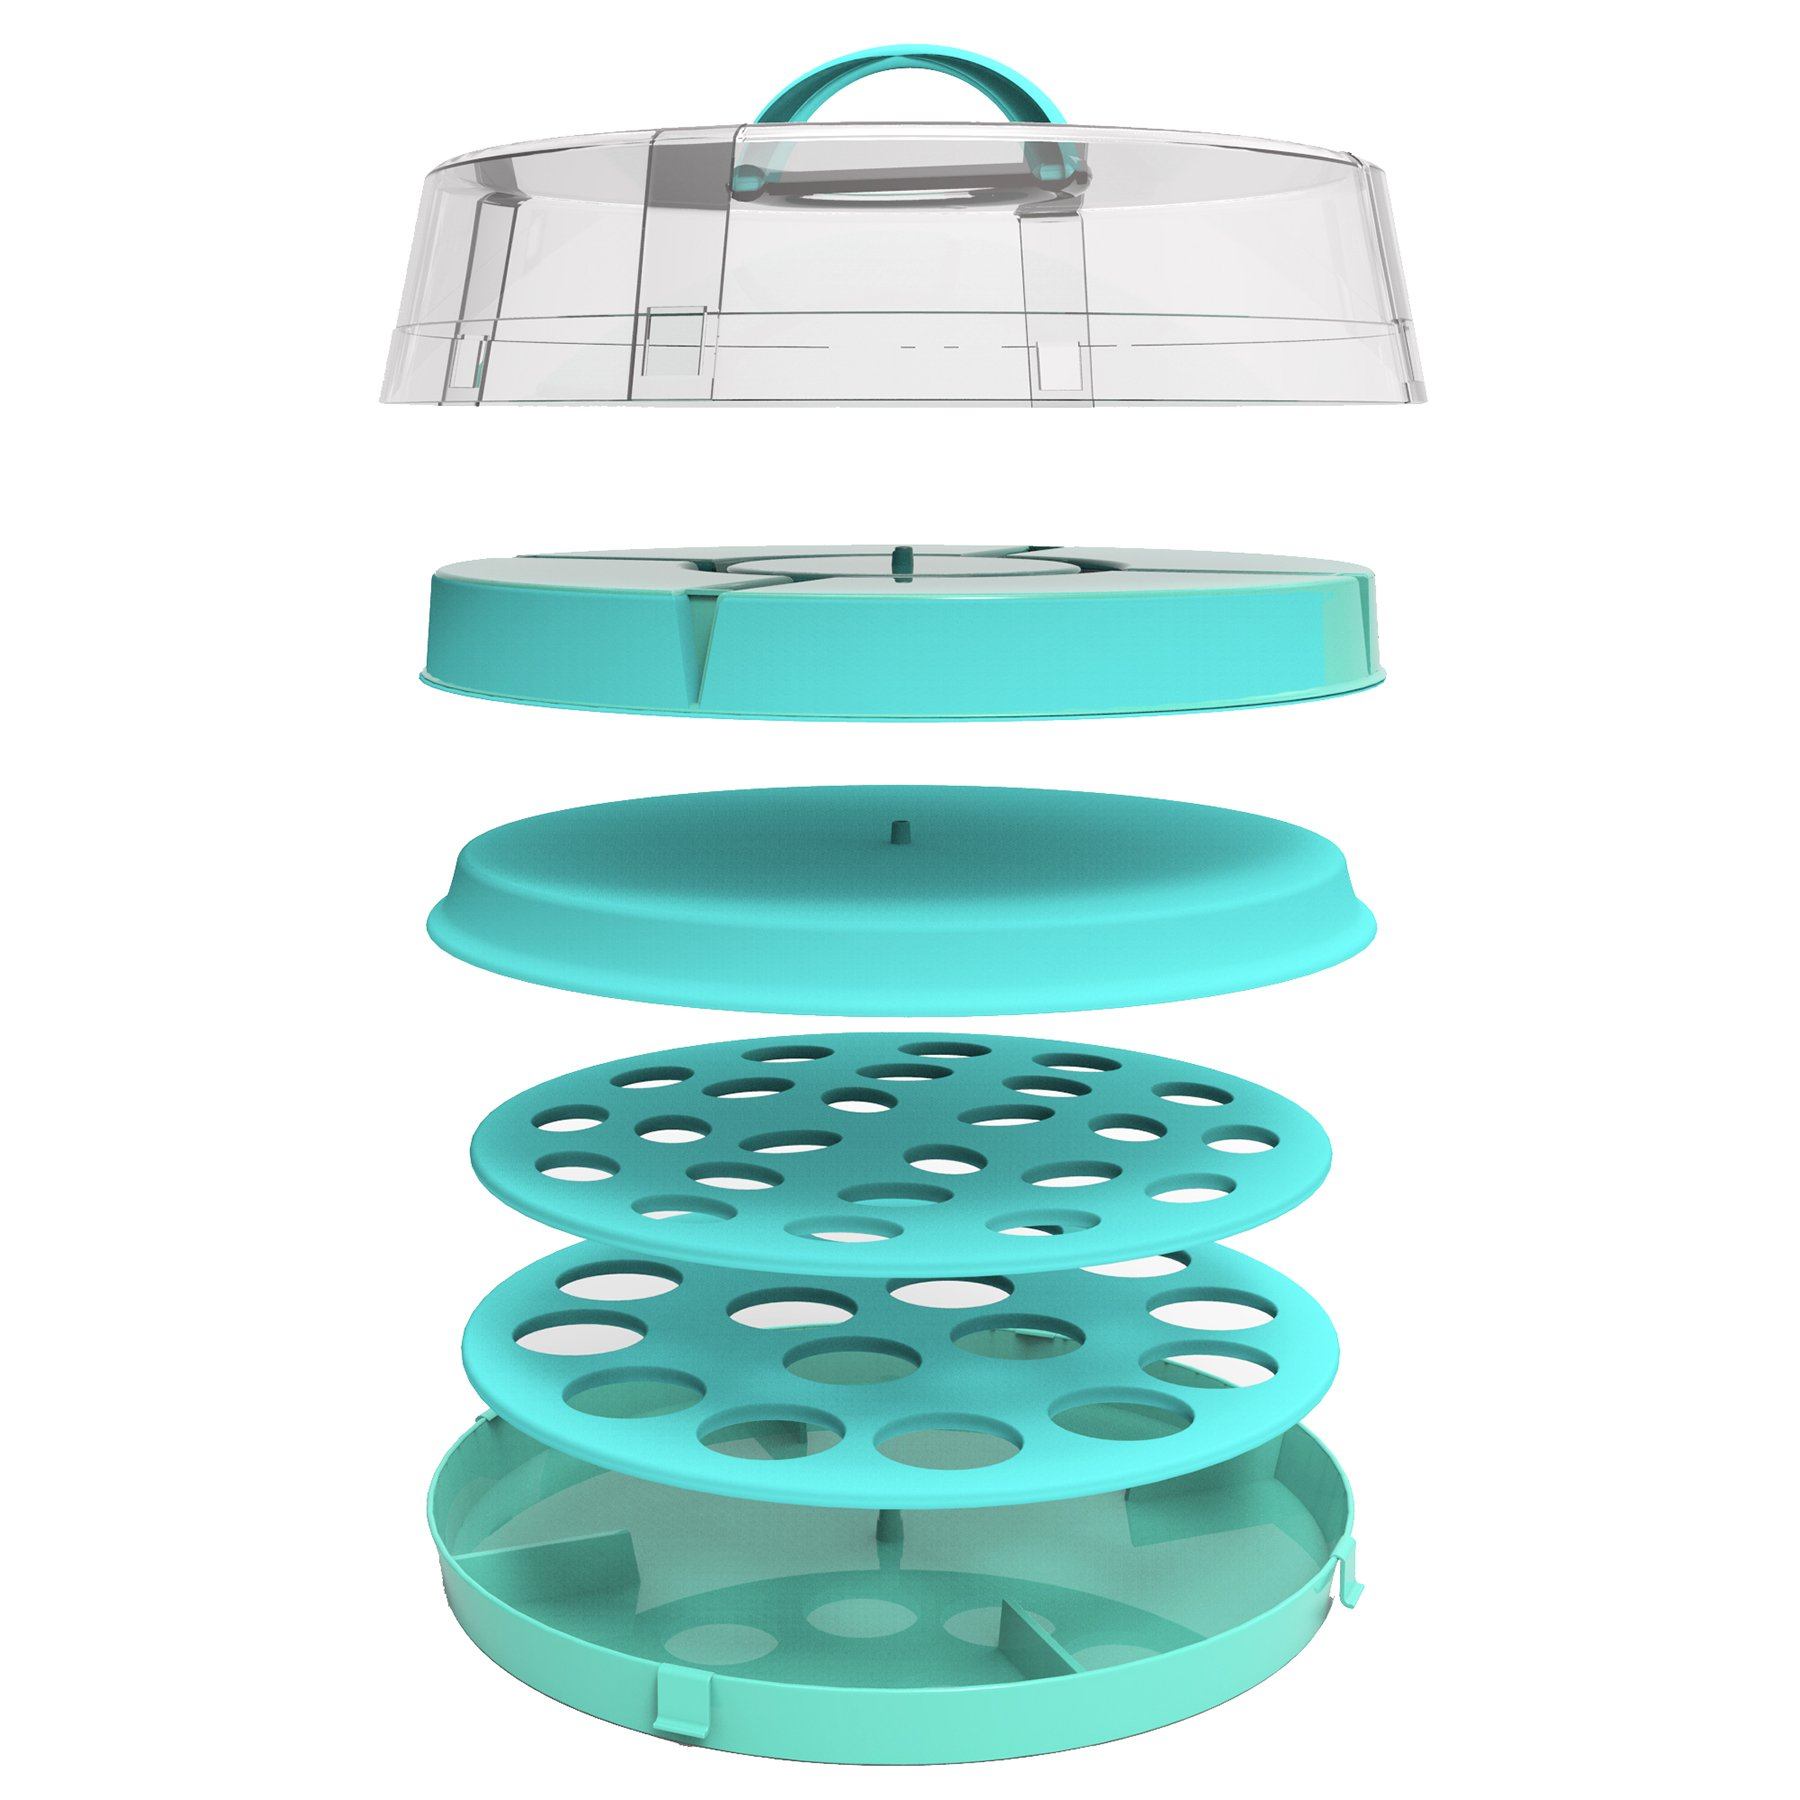 4-in-1 Cake Carrier - kitchen safe locking container - cupcake caddy - cake plate with dome - dessert tray and cover - Locking lid pies container bundt cake holder by DOTERNITY (Image #3)